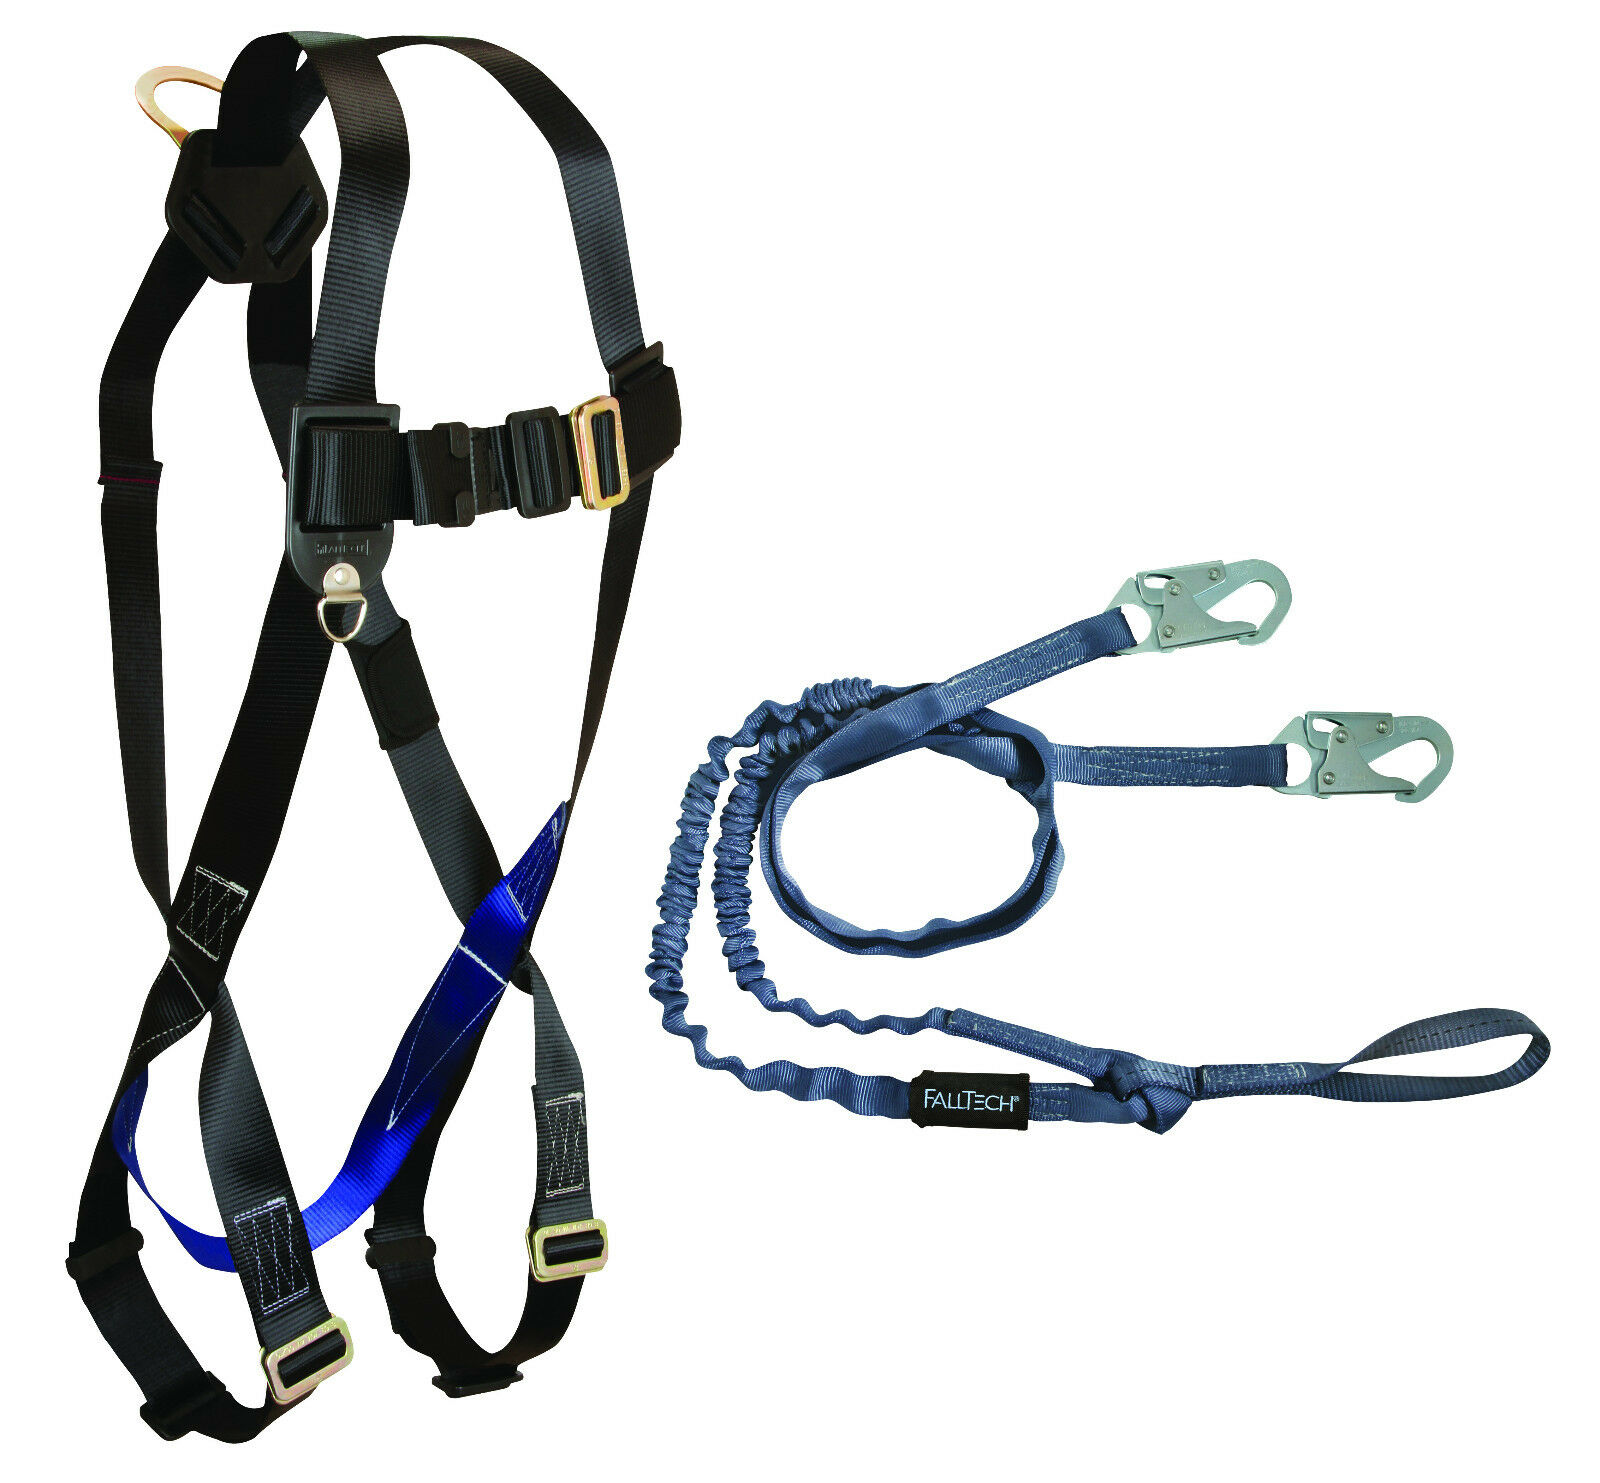 Ropes, Cords & Slings Competent Delta Plus An213200cdd Double Webbing Lanyard Shock Absorber Karabiner Snap Hook Outdoor Sports